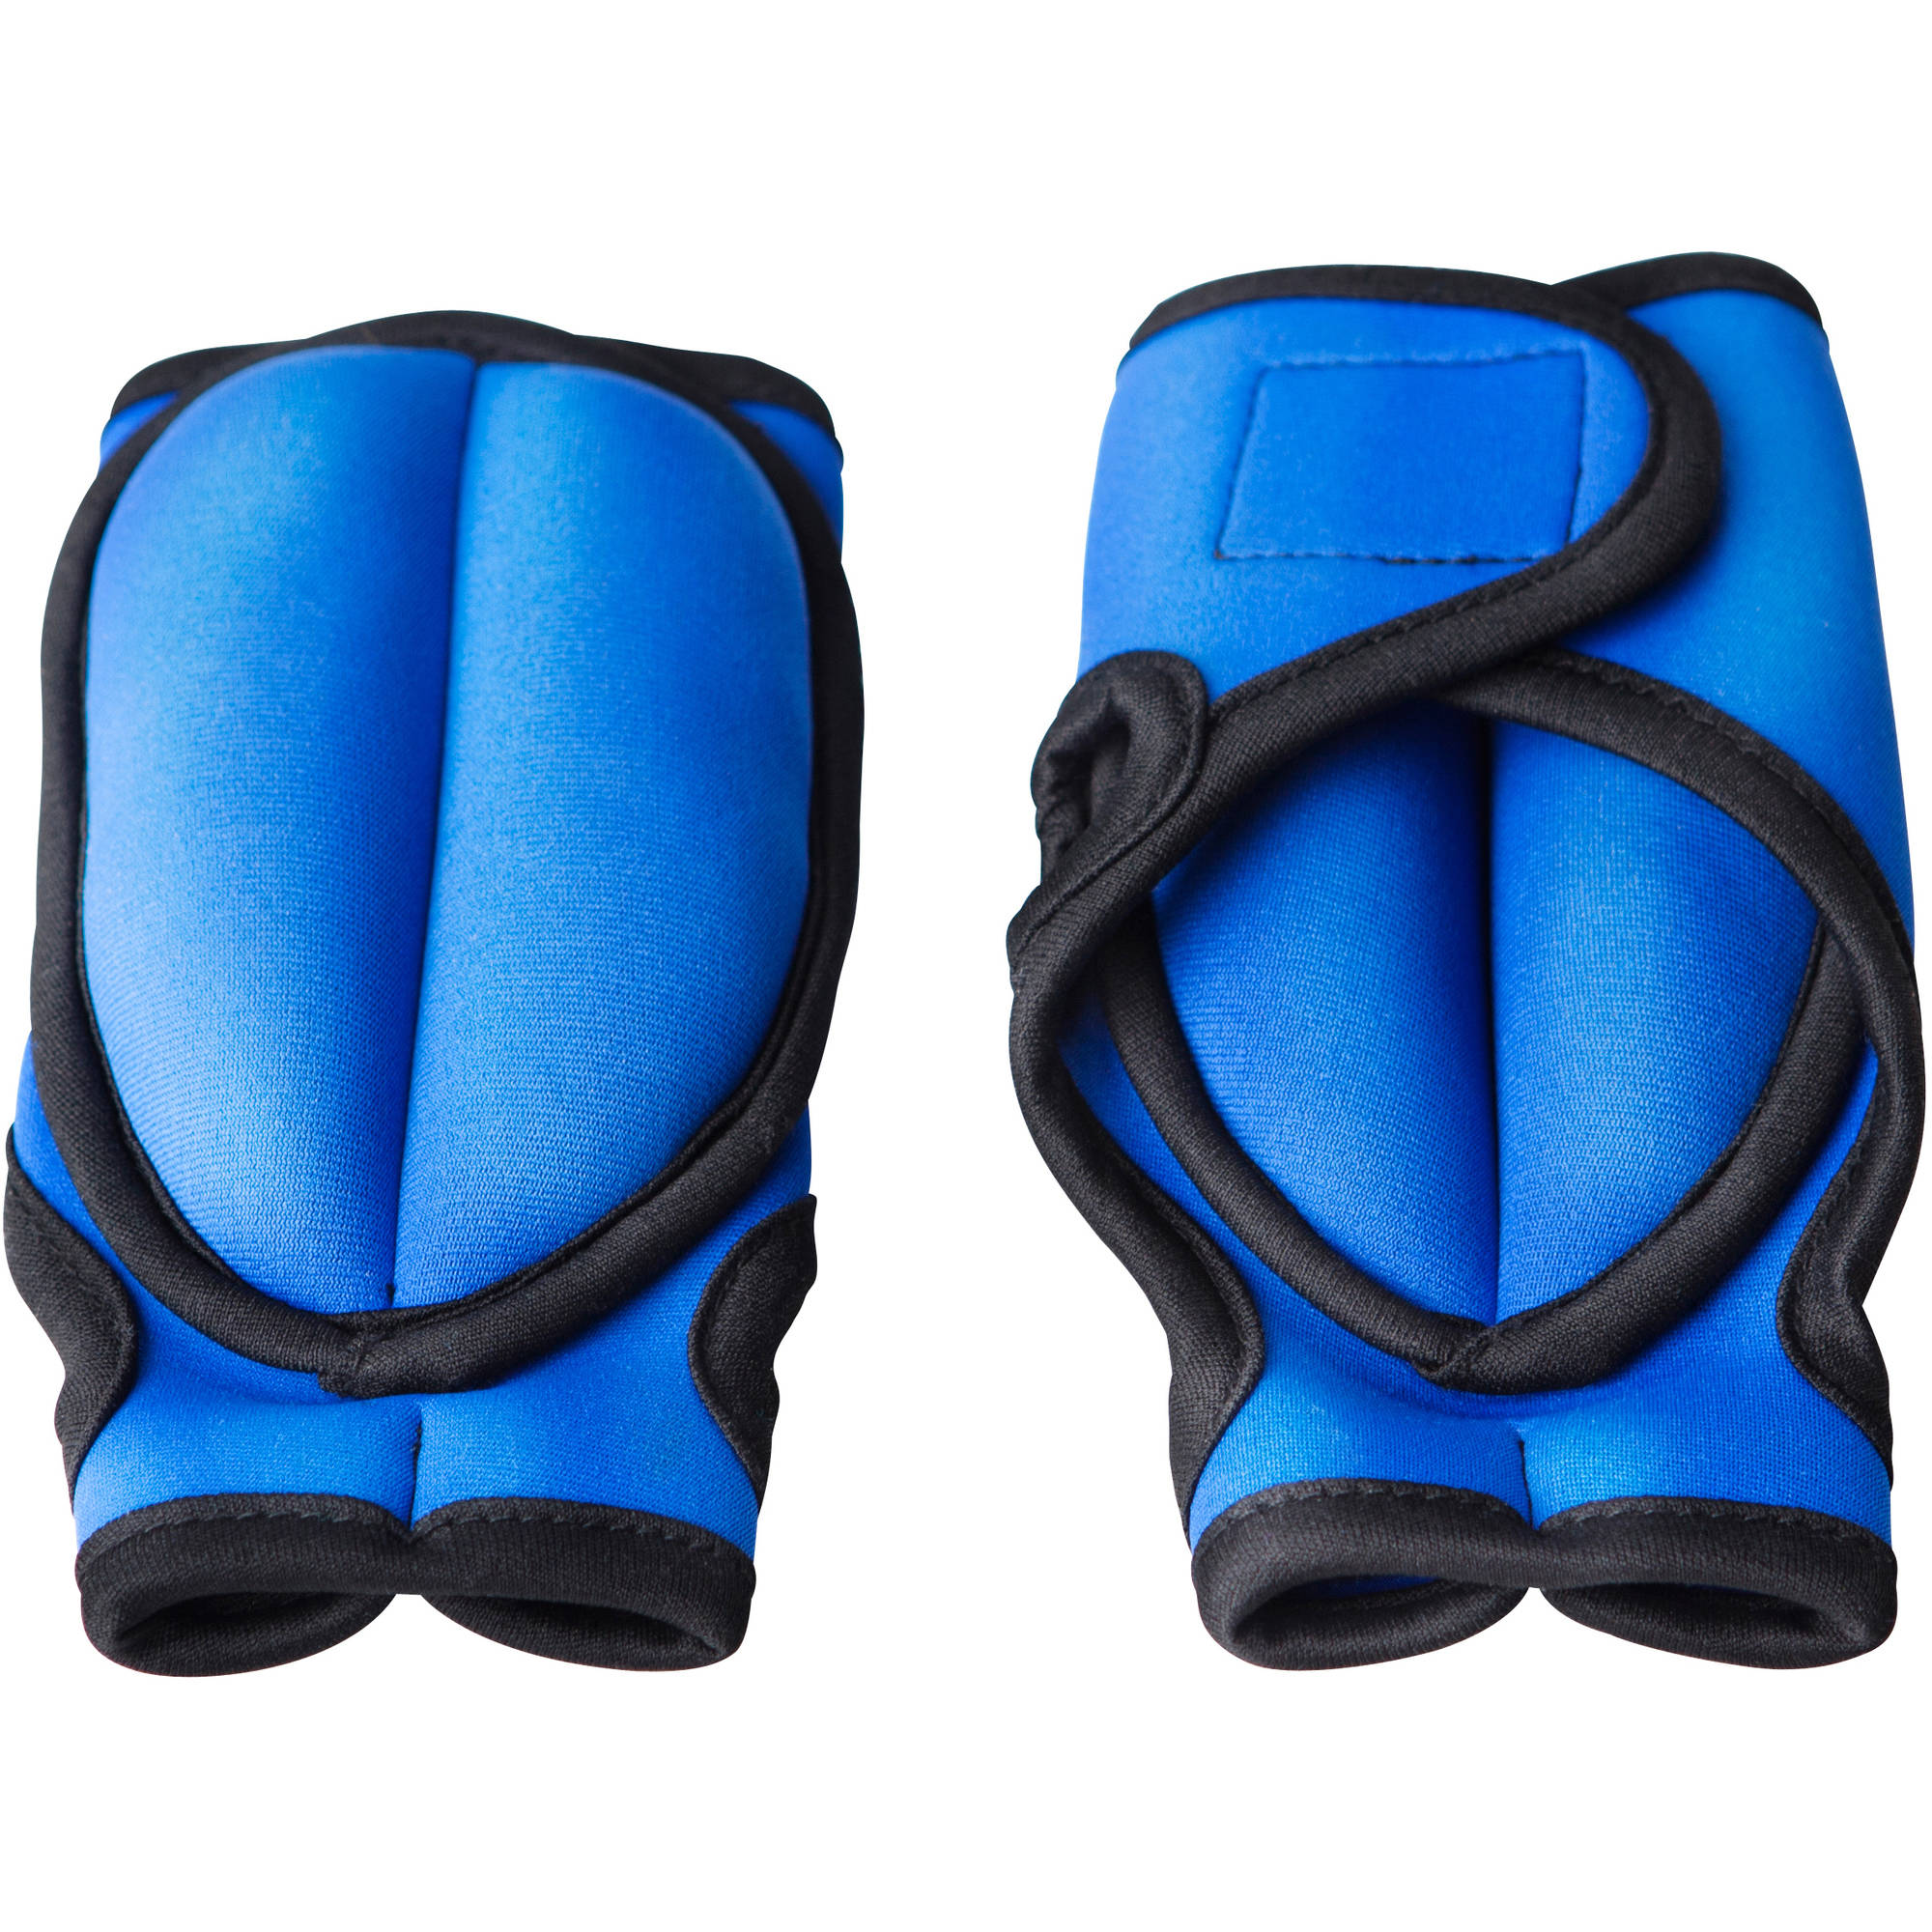 Weider 4 Lb Pair Weighted Gloves